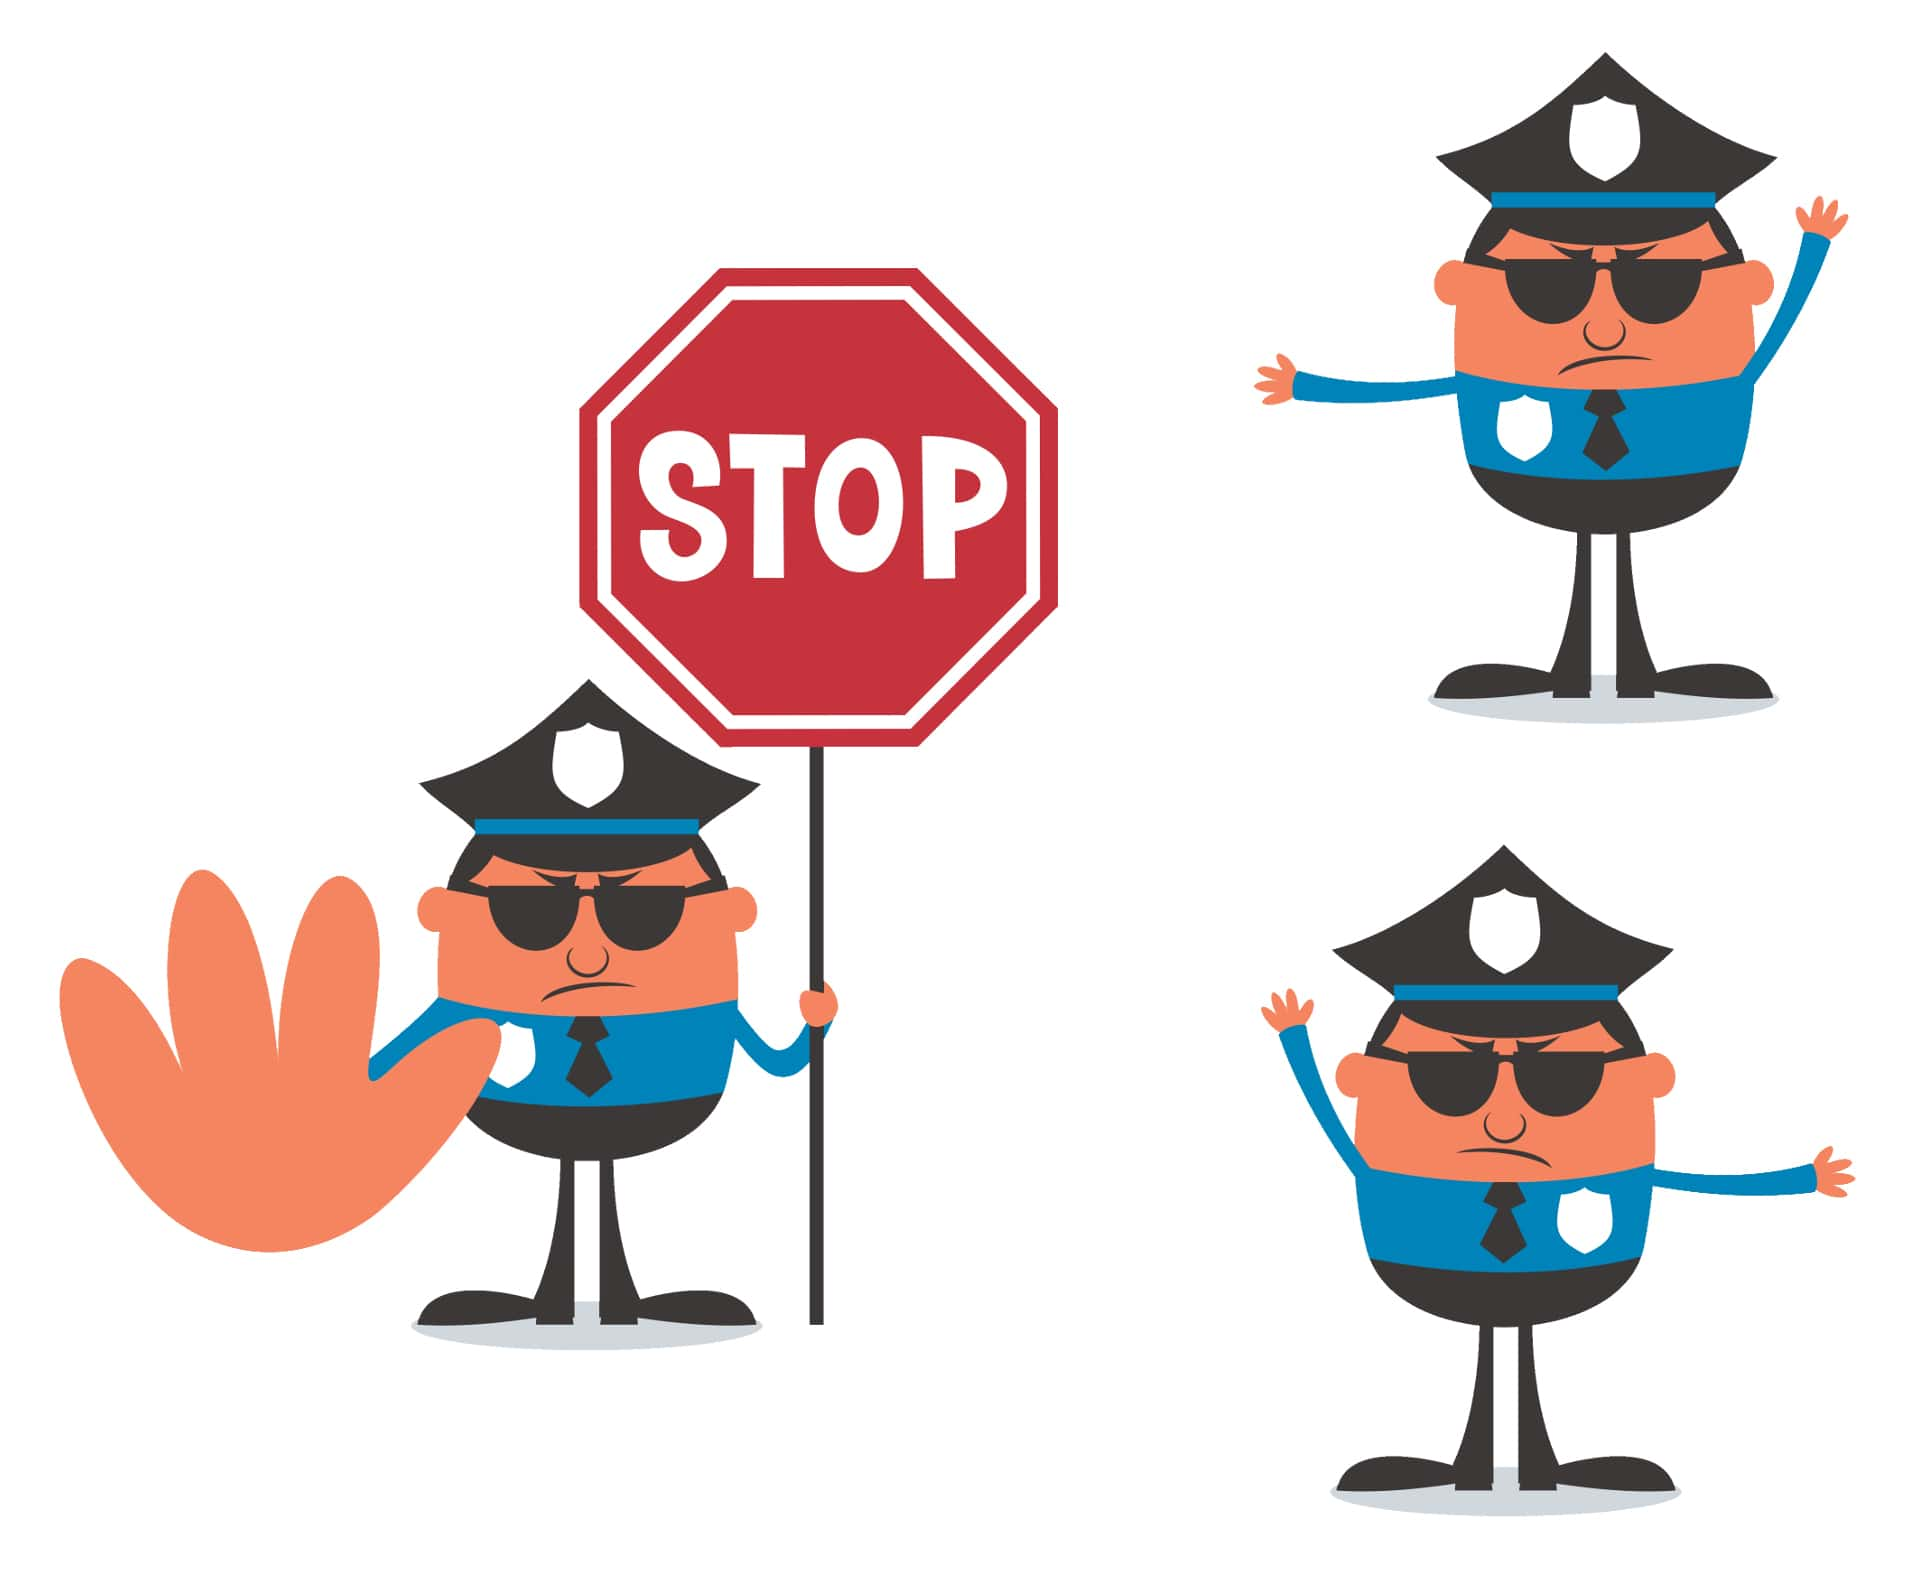 Network Packet Brokers are like Traffic Cops